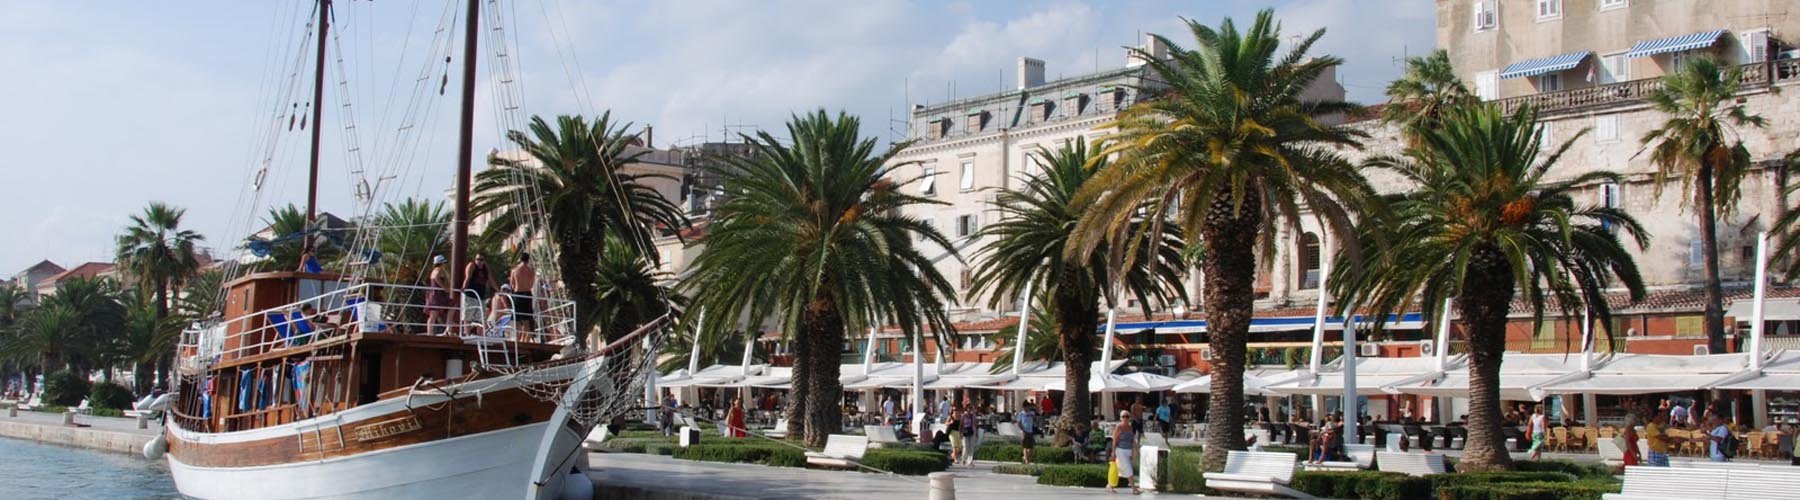 Hostel accommodation in Split